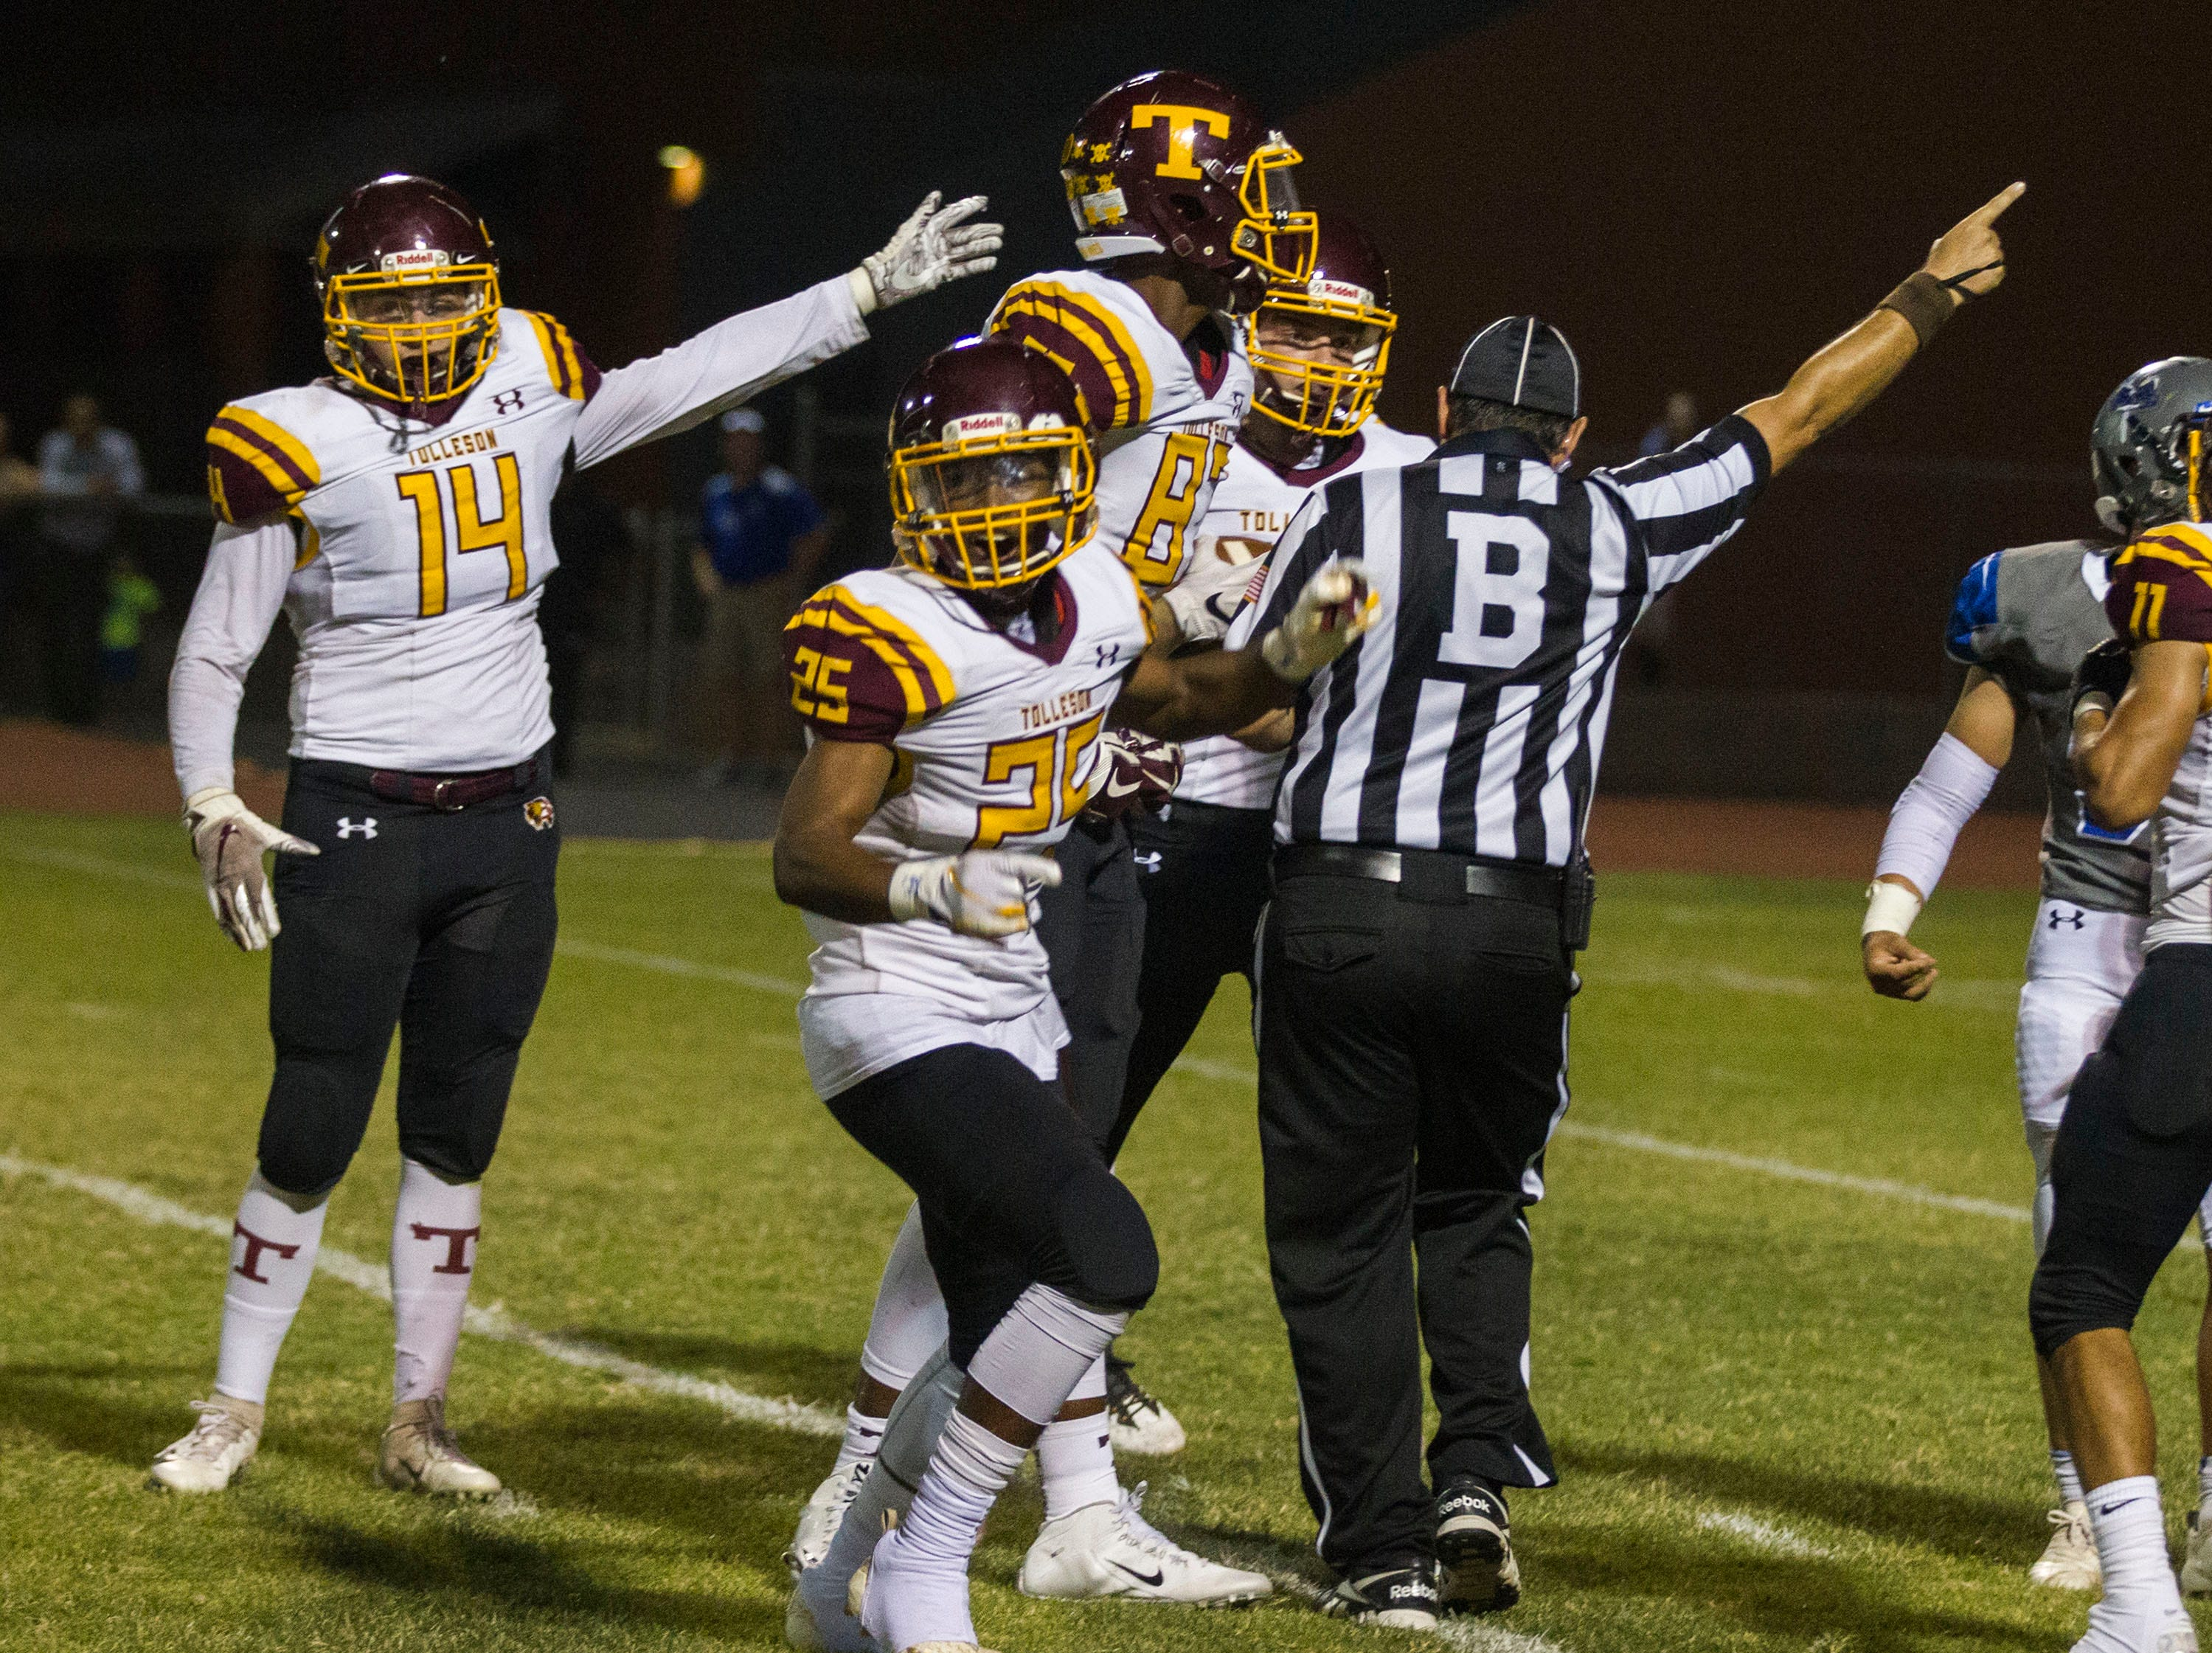 Tolleson players celebrate recovering a fumble during their game with Westview in Avondale Friday, Sept. 28, 2018. #azhsfb